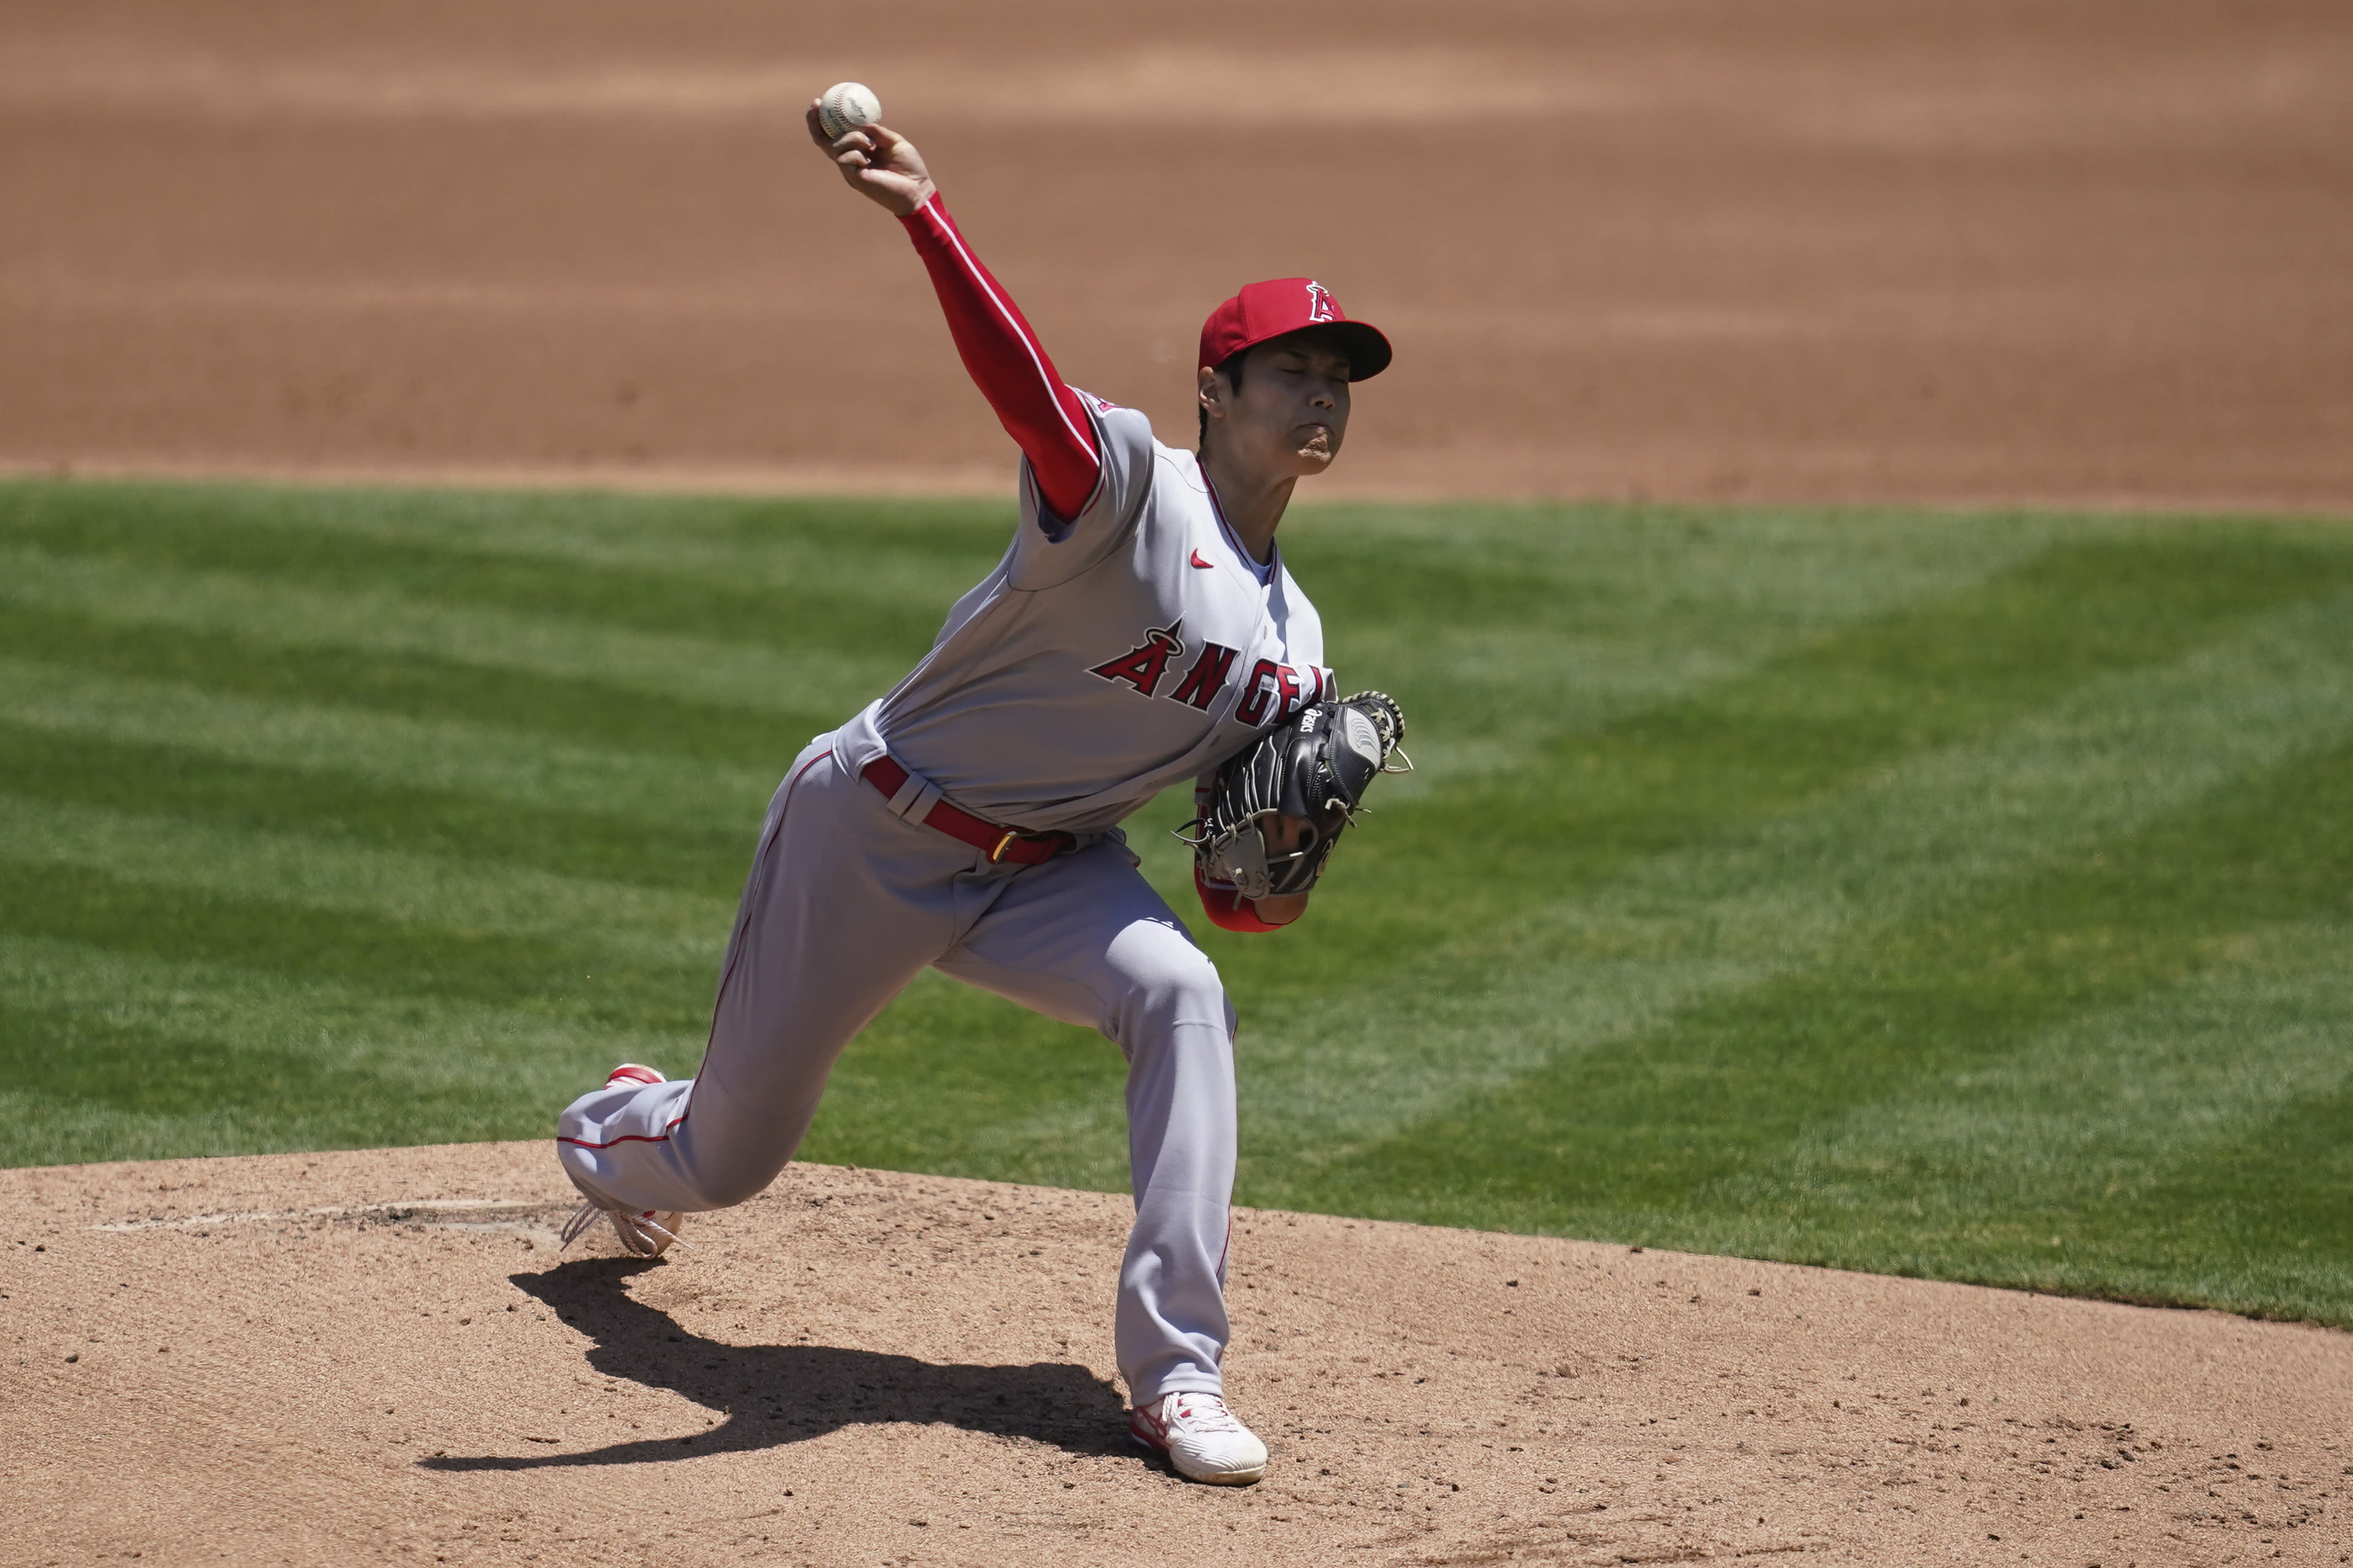 Los Angeles Angels' Shohei Ohtani throws against the Oakland Athletics during the first inning of a baseball game in Oakland, Calif., Sunday, July 26, 2020. (AP Photo/Jeff Chiu)